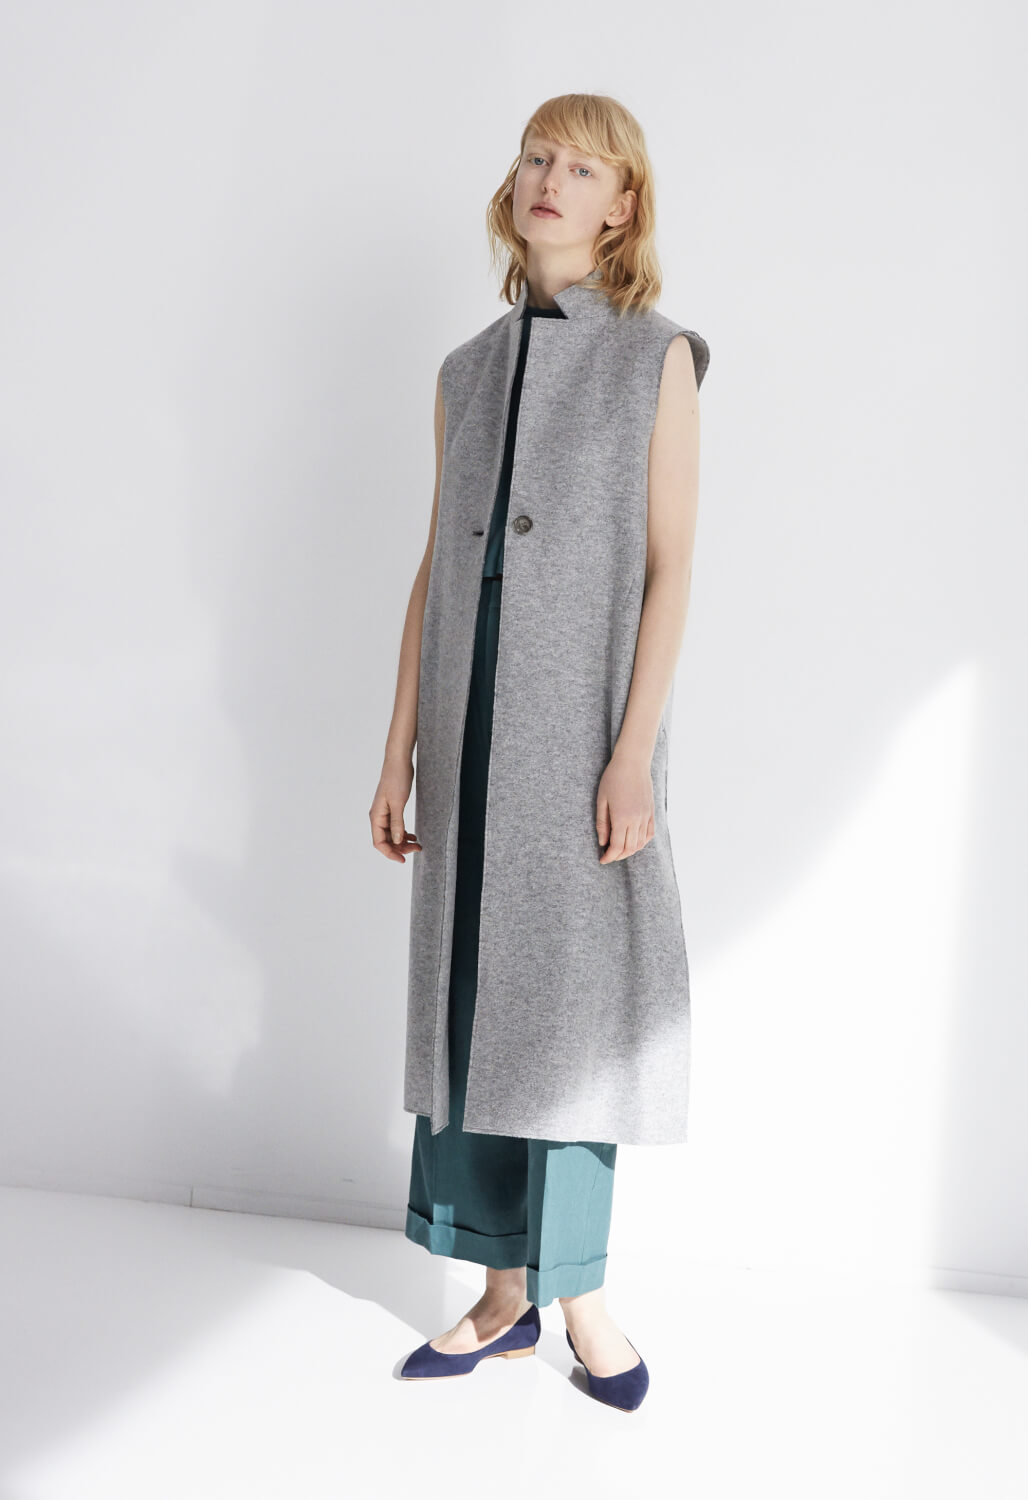 2017 PRE FALL COLLECTION 4